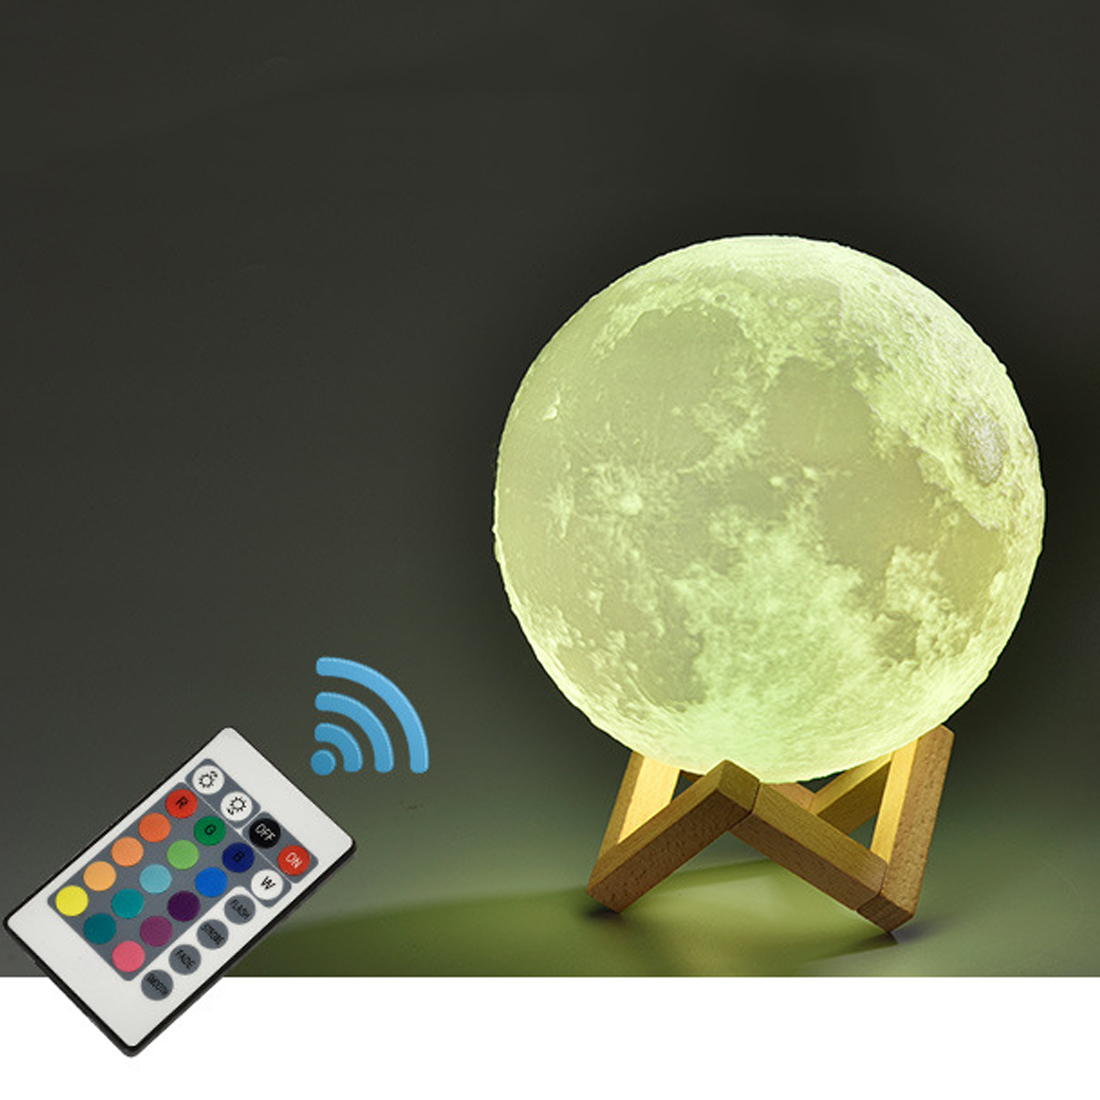 16 Color Change 3D Print Lamp Creative Rechargeable Moon Lamp Moon Bedroom Bookcase Night Light 3D Light Touch Switch